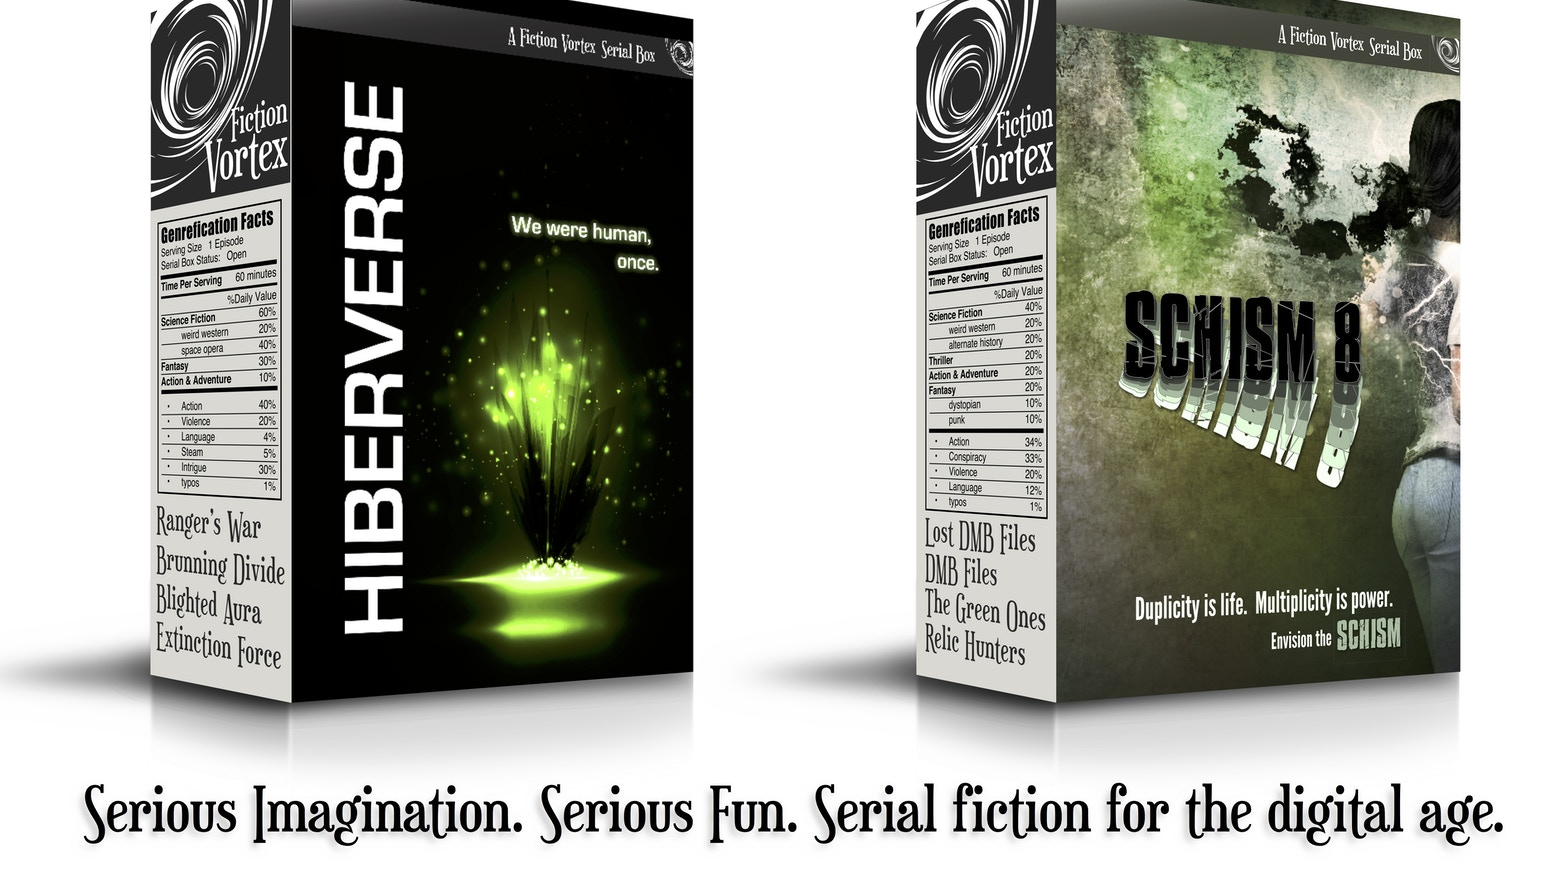 Netflix meets Amazon Kindle. Collaborative sci-fi/fantasy storyworlds in serial. Your sole source of fiction.